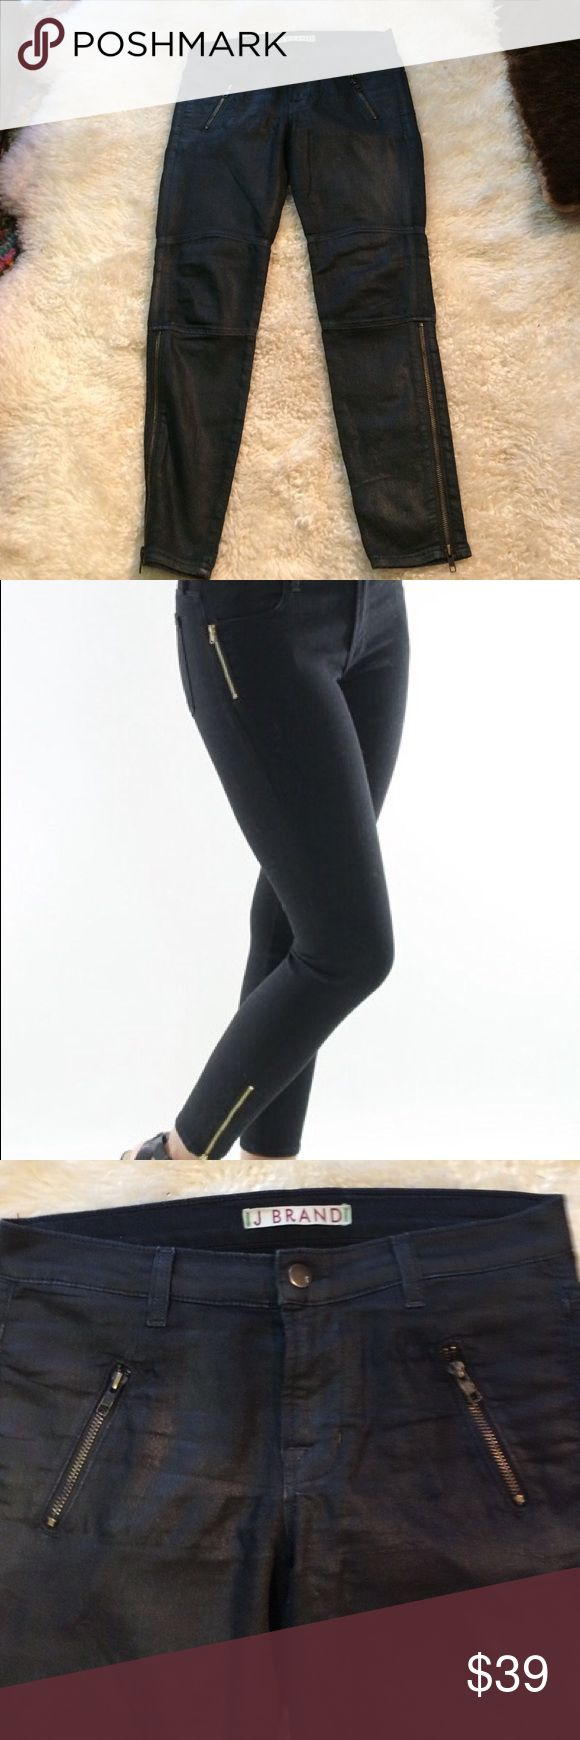 "🎉 j Brand Zipper Skinny👖Size 27 comfy stretch The Zipper Skinny Jean by J Brand is edgy with gold zip accents in vanity. Cropped style. Features four pocket styling with zip fly and one button closure. Gold hardware. The essential black jean. 9.5 inch front rise. 28""inseam measured   92.5 percent cotton 5 % polyester 2.5% Made in the USA.  There is no label contents the information about was taken from the Internet on the J. brand site J Brand Jeans Skinny"